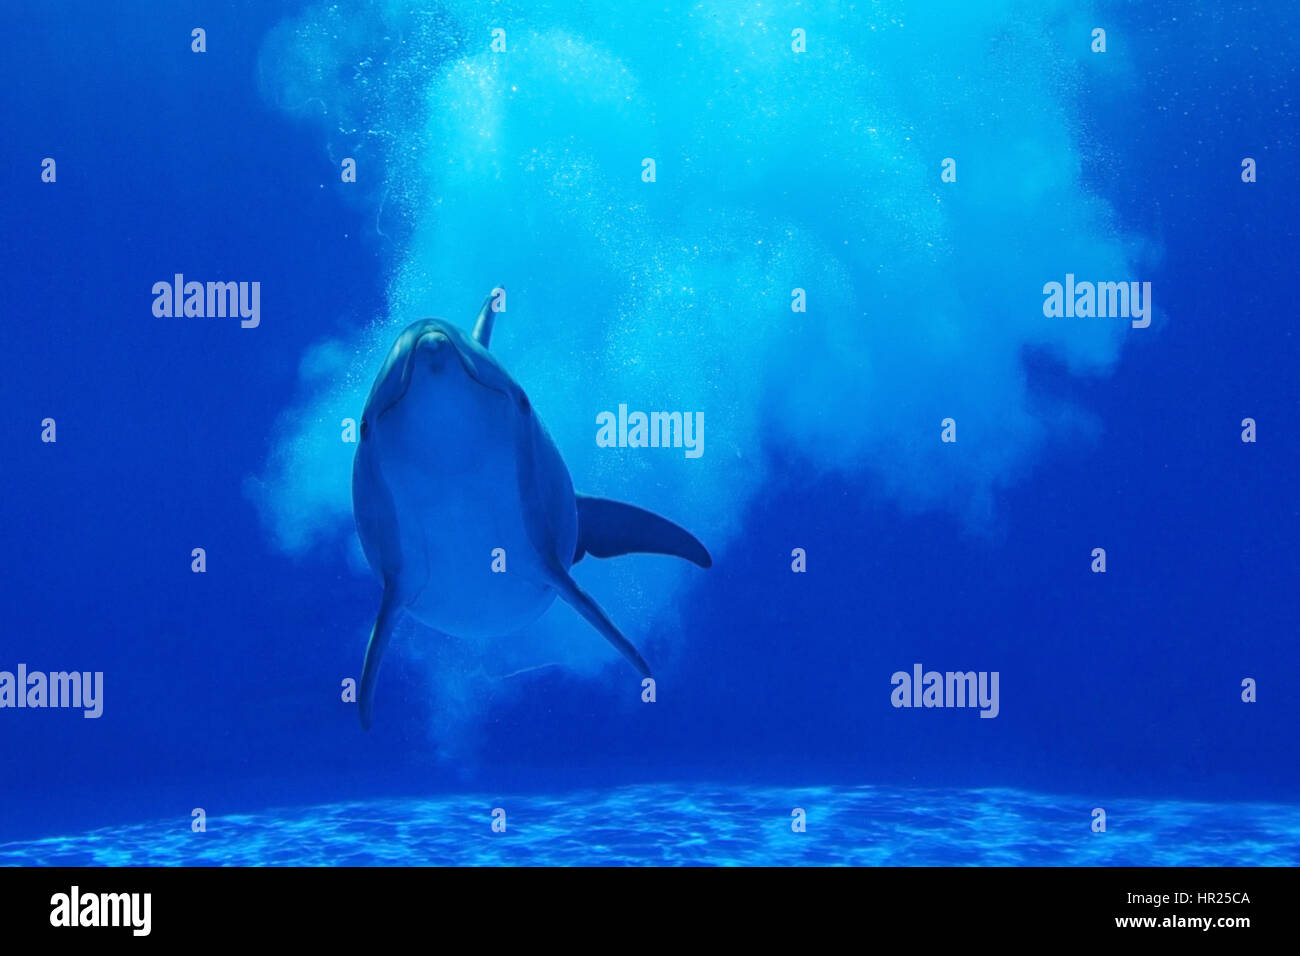 Dolphin under water - Stock Image